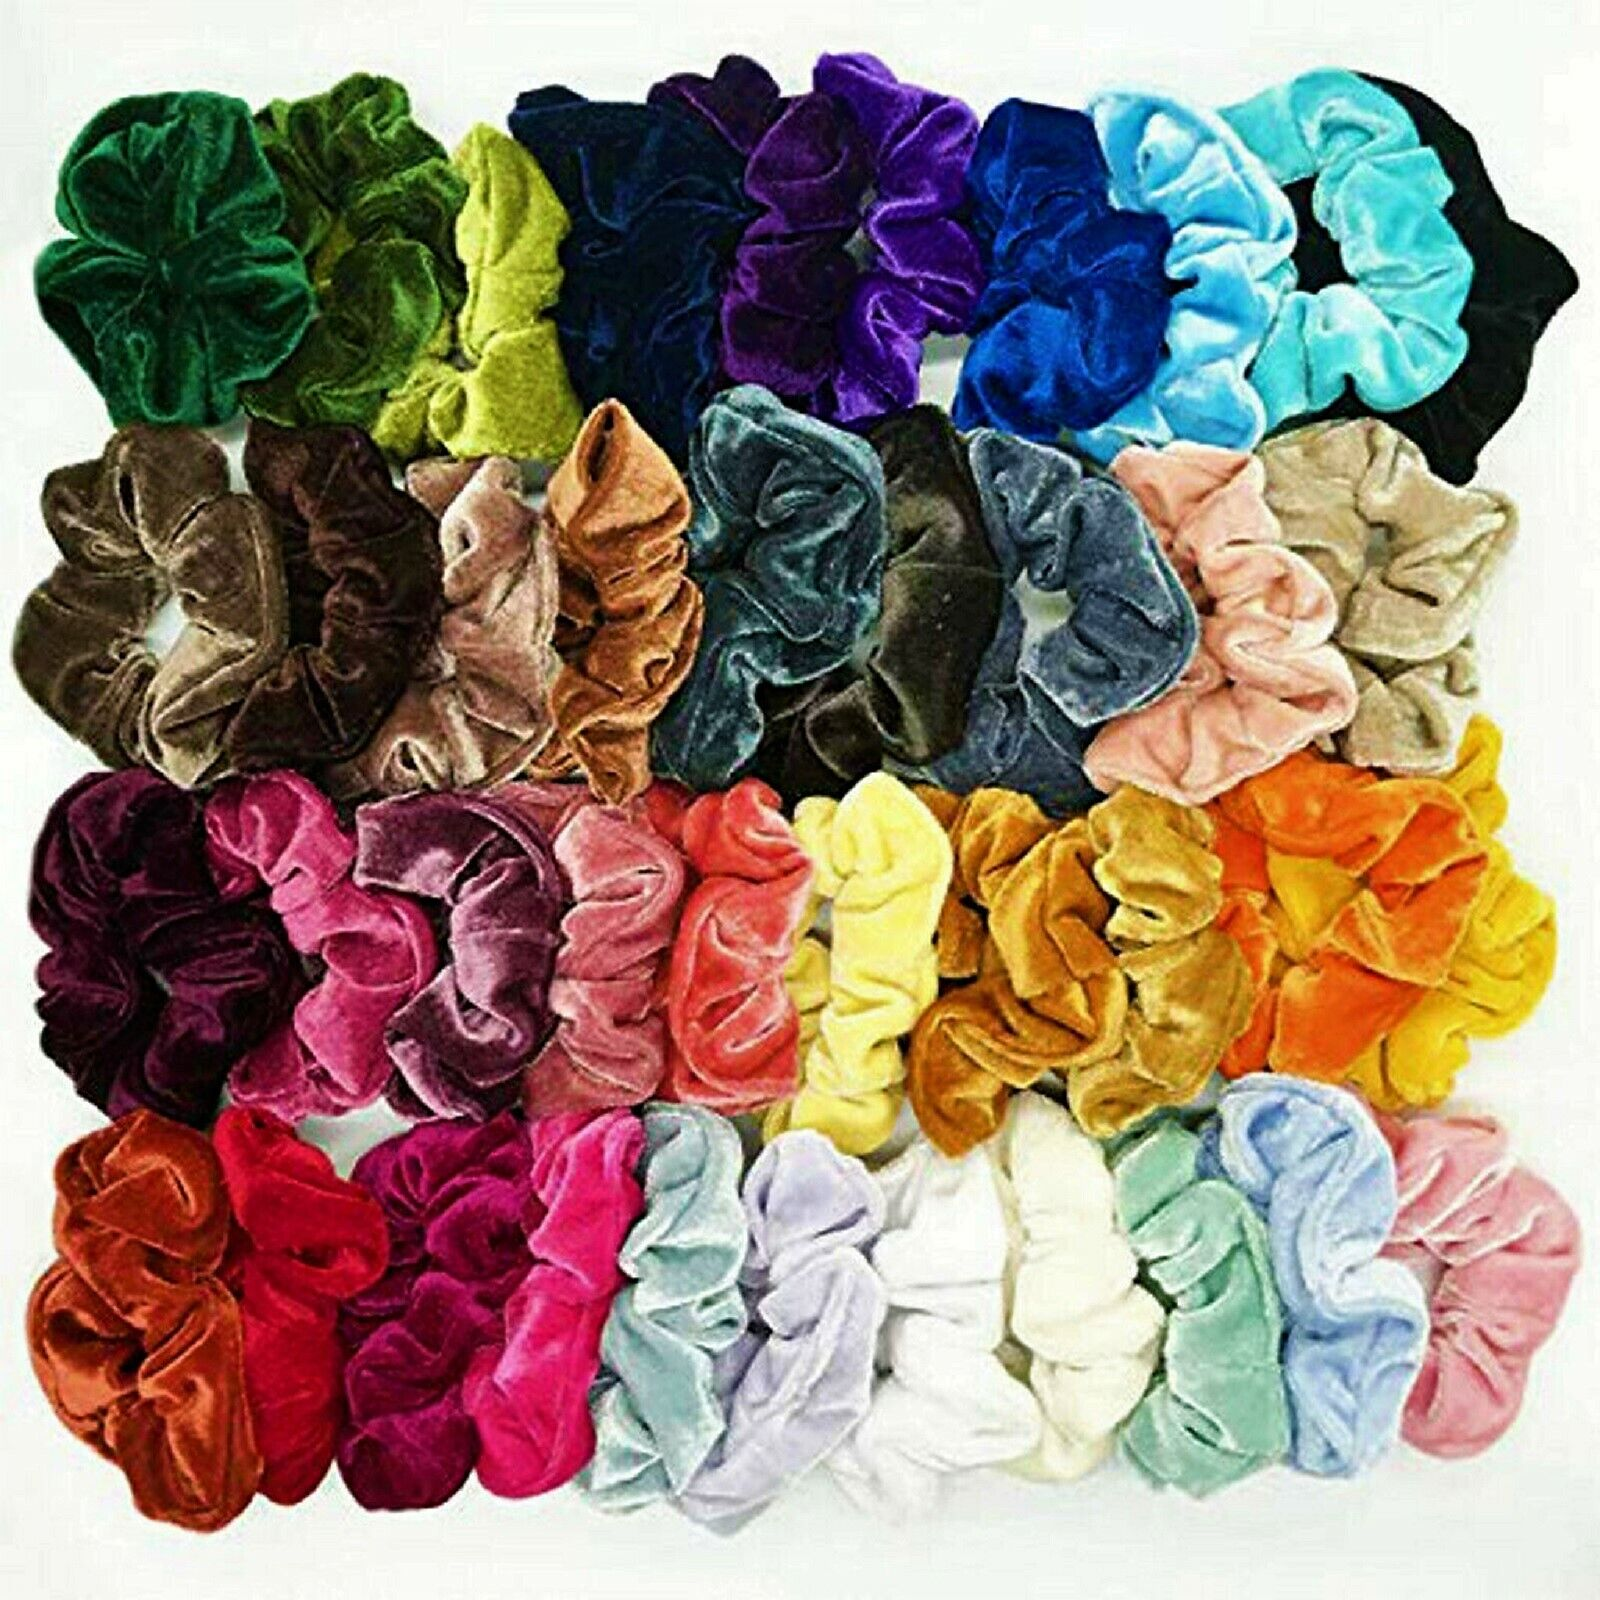 50 Pcs Colorful Velvet Hair Band Scrunchies Set, Elastic Bob